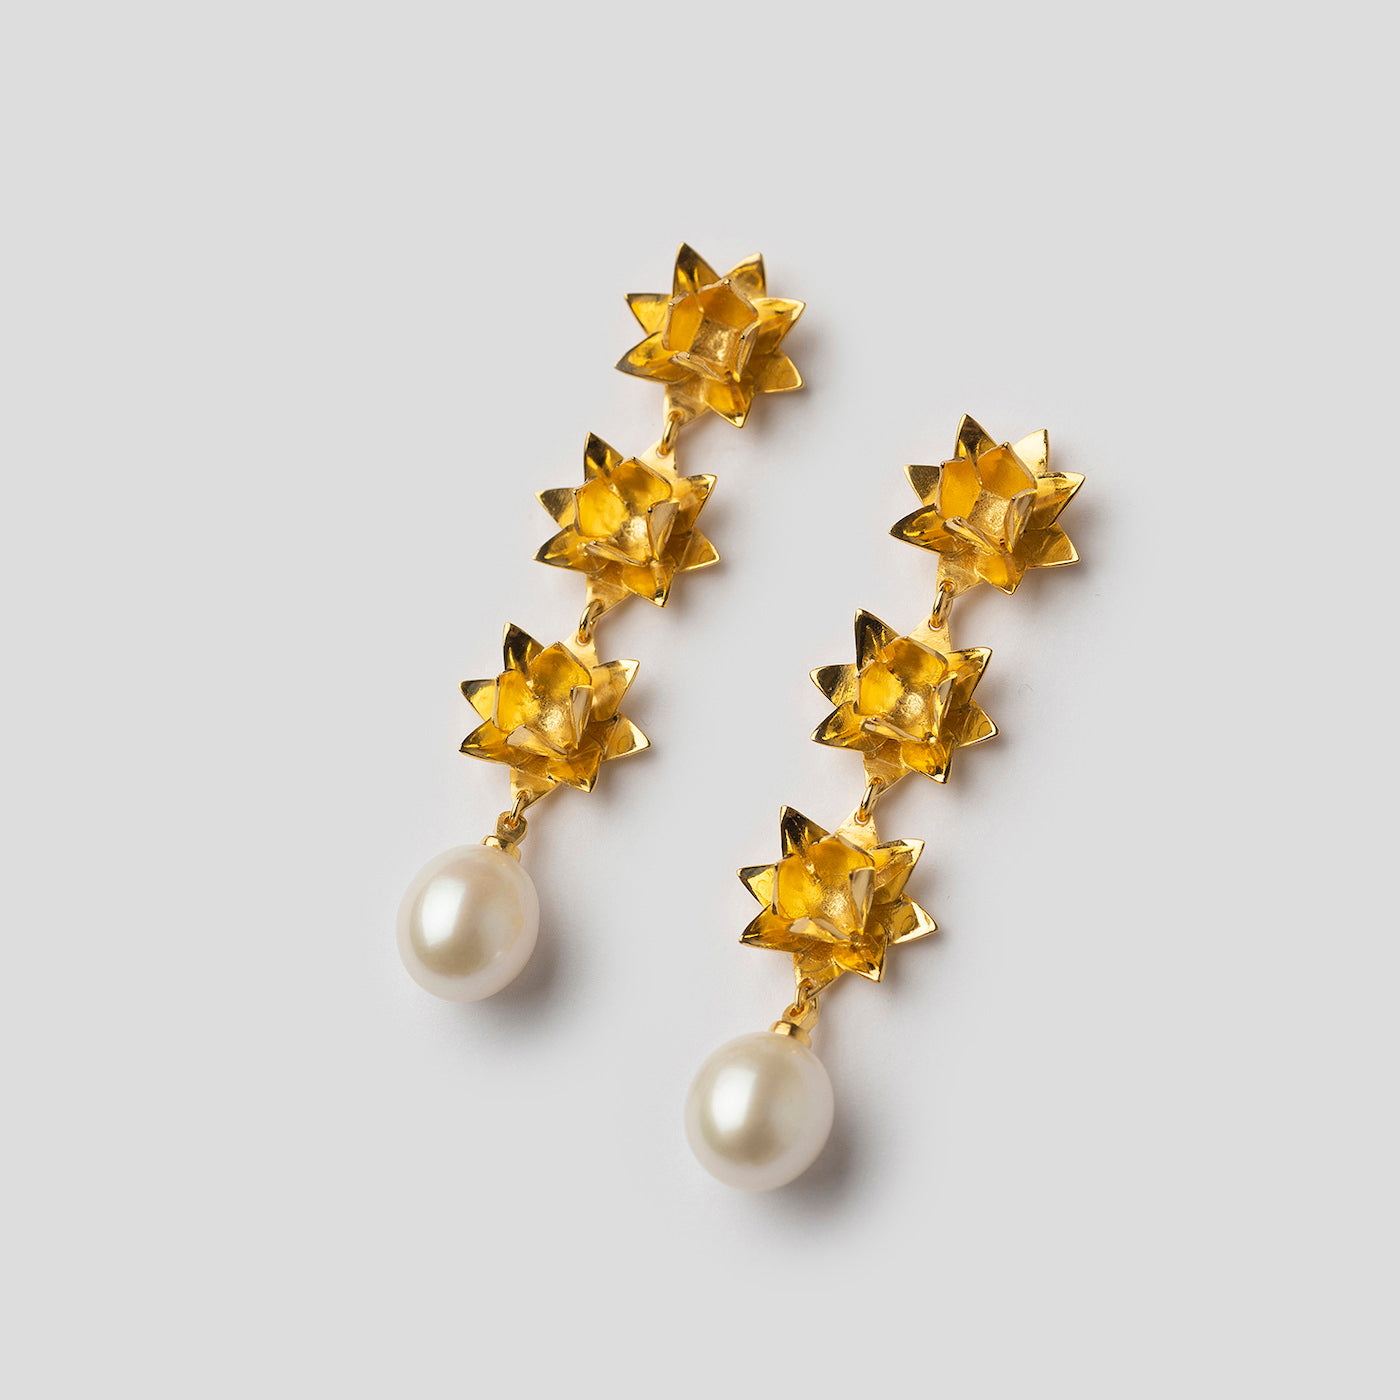 gold triple lotus earrings with pearls on angle on white background